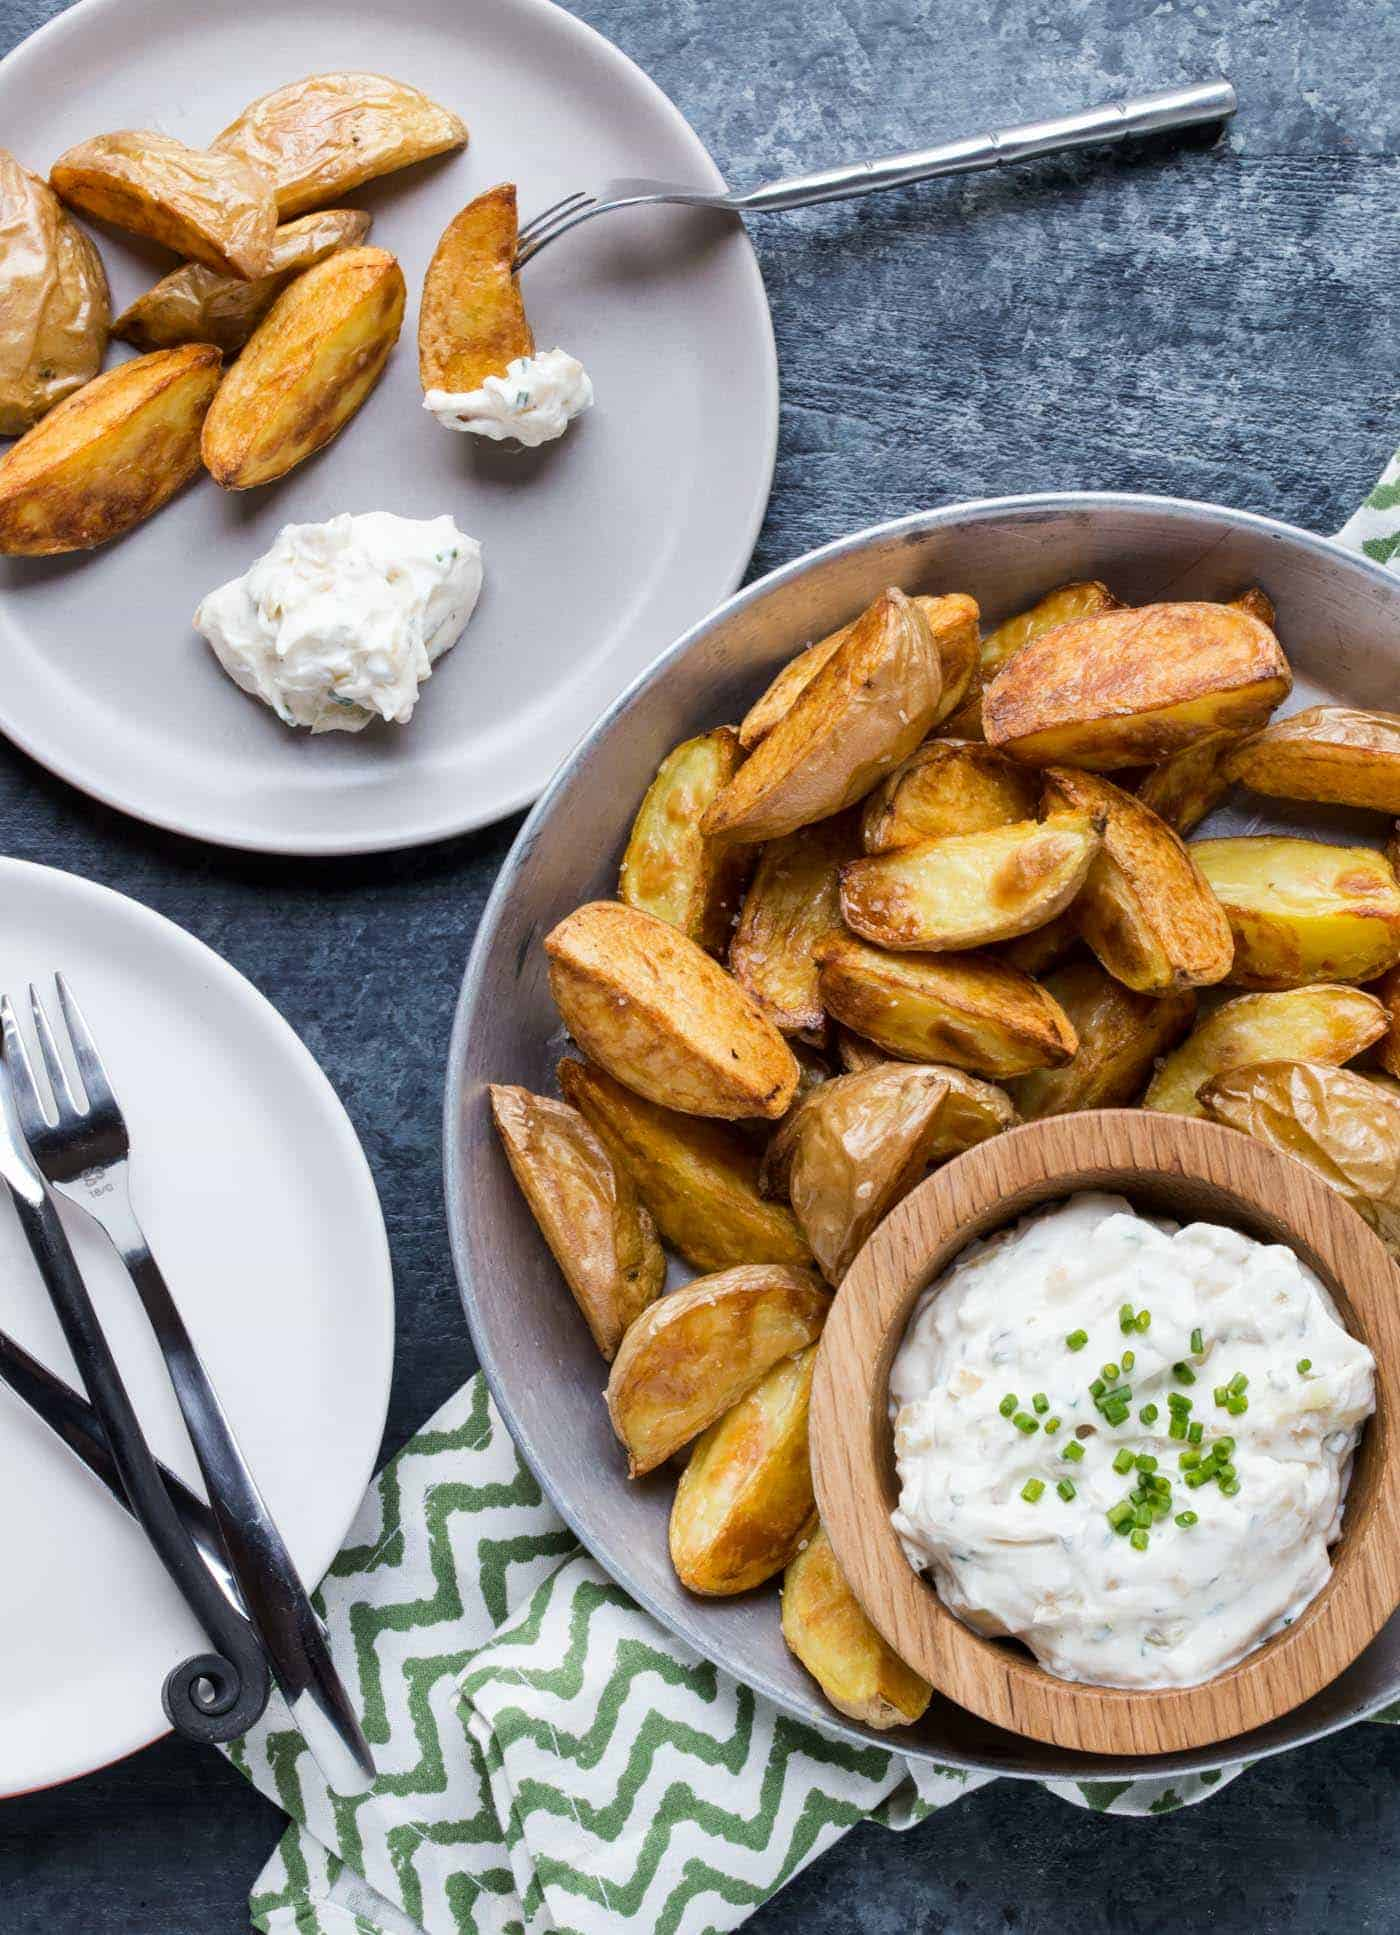 Add something new to your appetizer spread with this easy recipe for Roasted Potatoes with Sour Cream and Onion Dip.